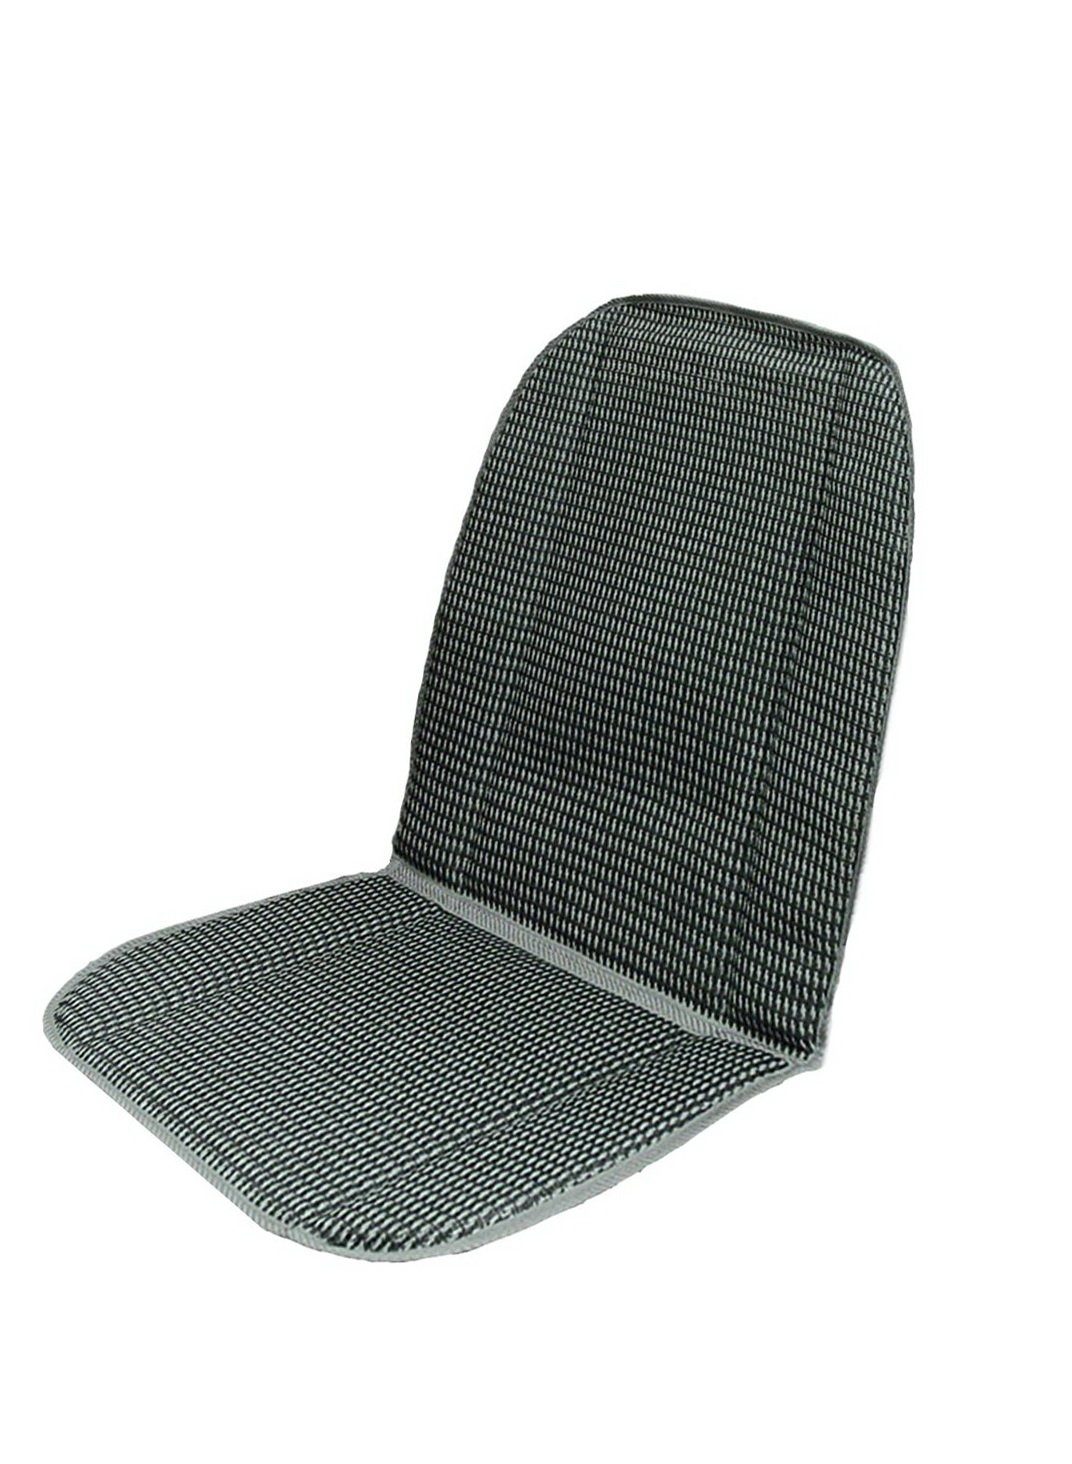 Heated Car Seat Cushion With Auto Shut Off